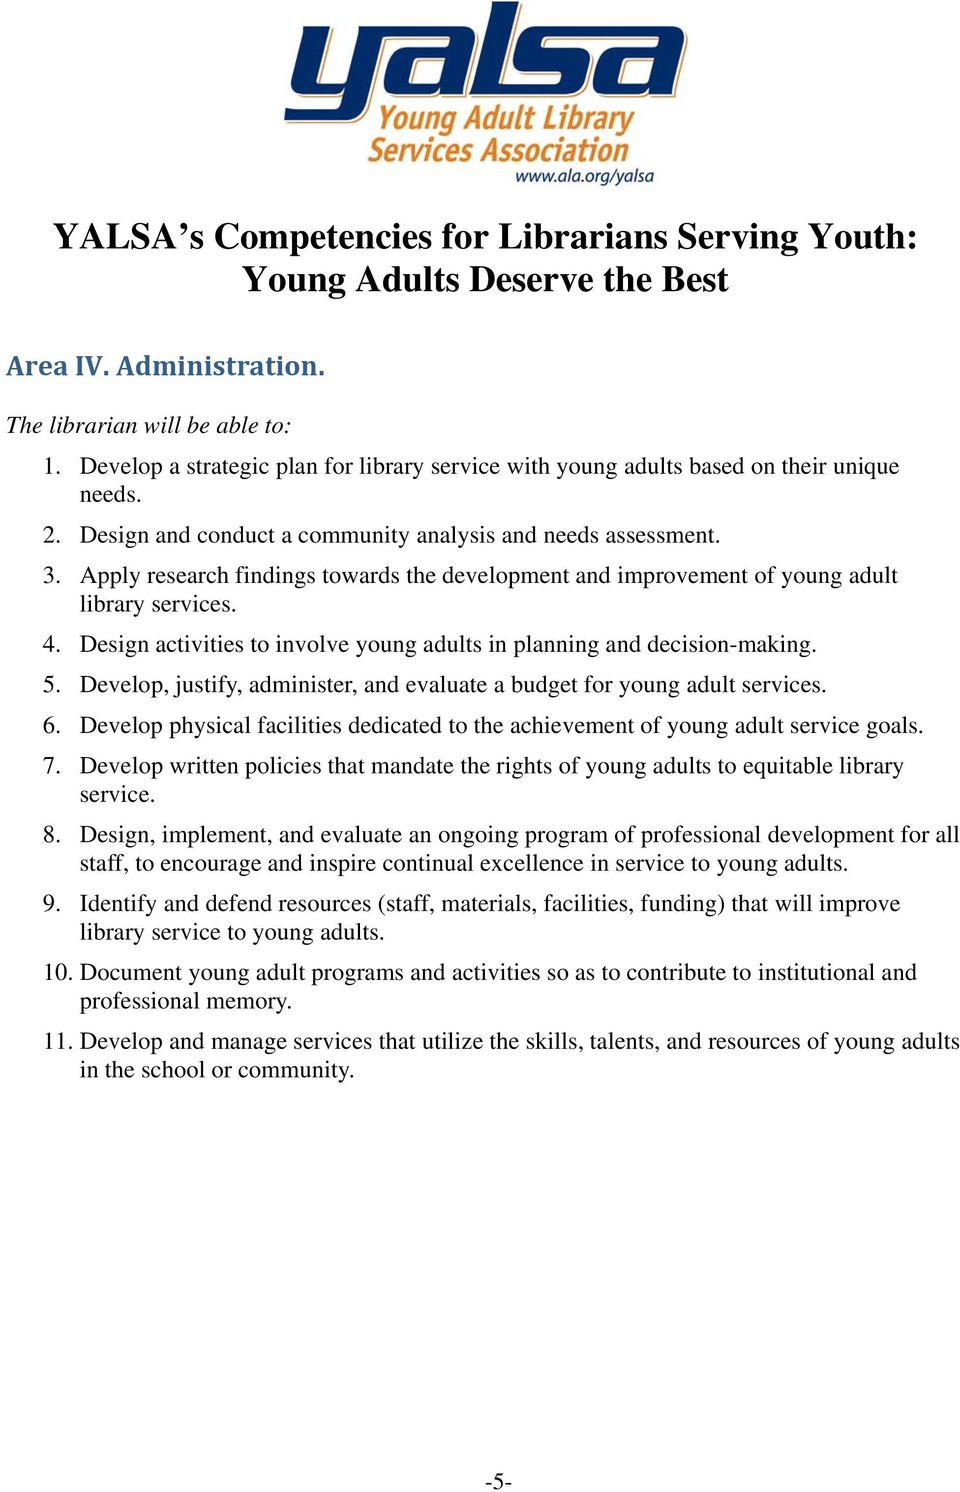 Develop, justify, administer, and evaluate a budget for young adult services. 6. Develop physical facilities dedicated to the achievement of young adult service goals. 7.